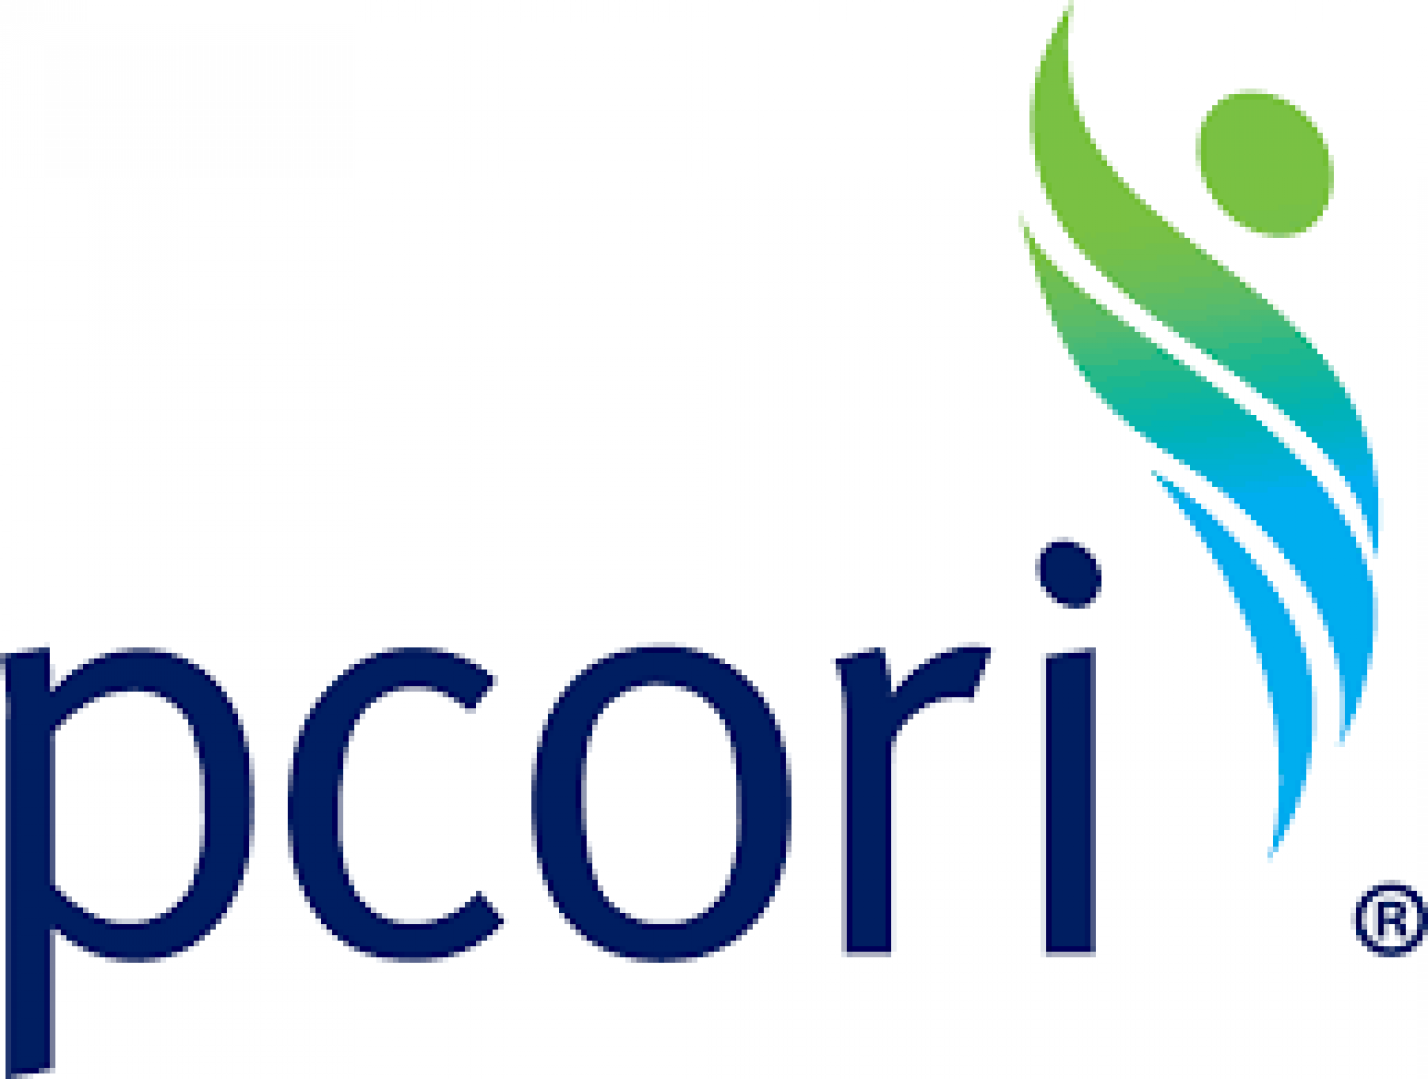 New research grant from PCORI